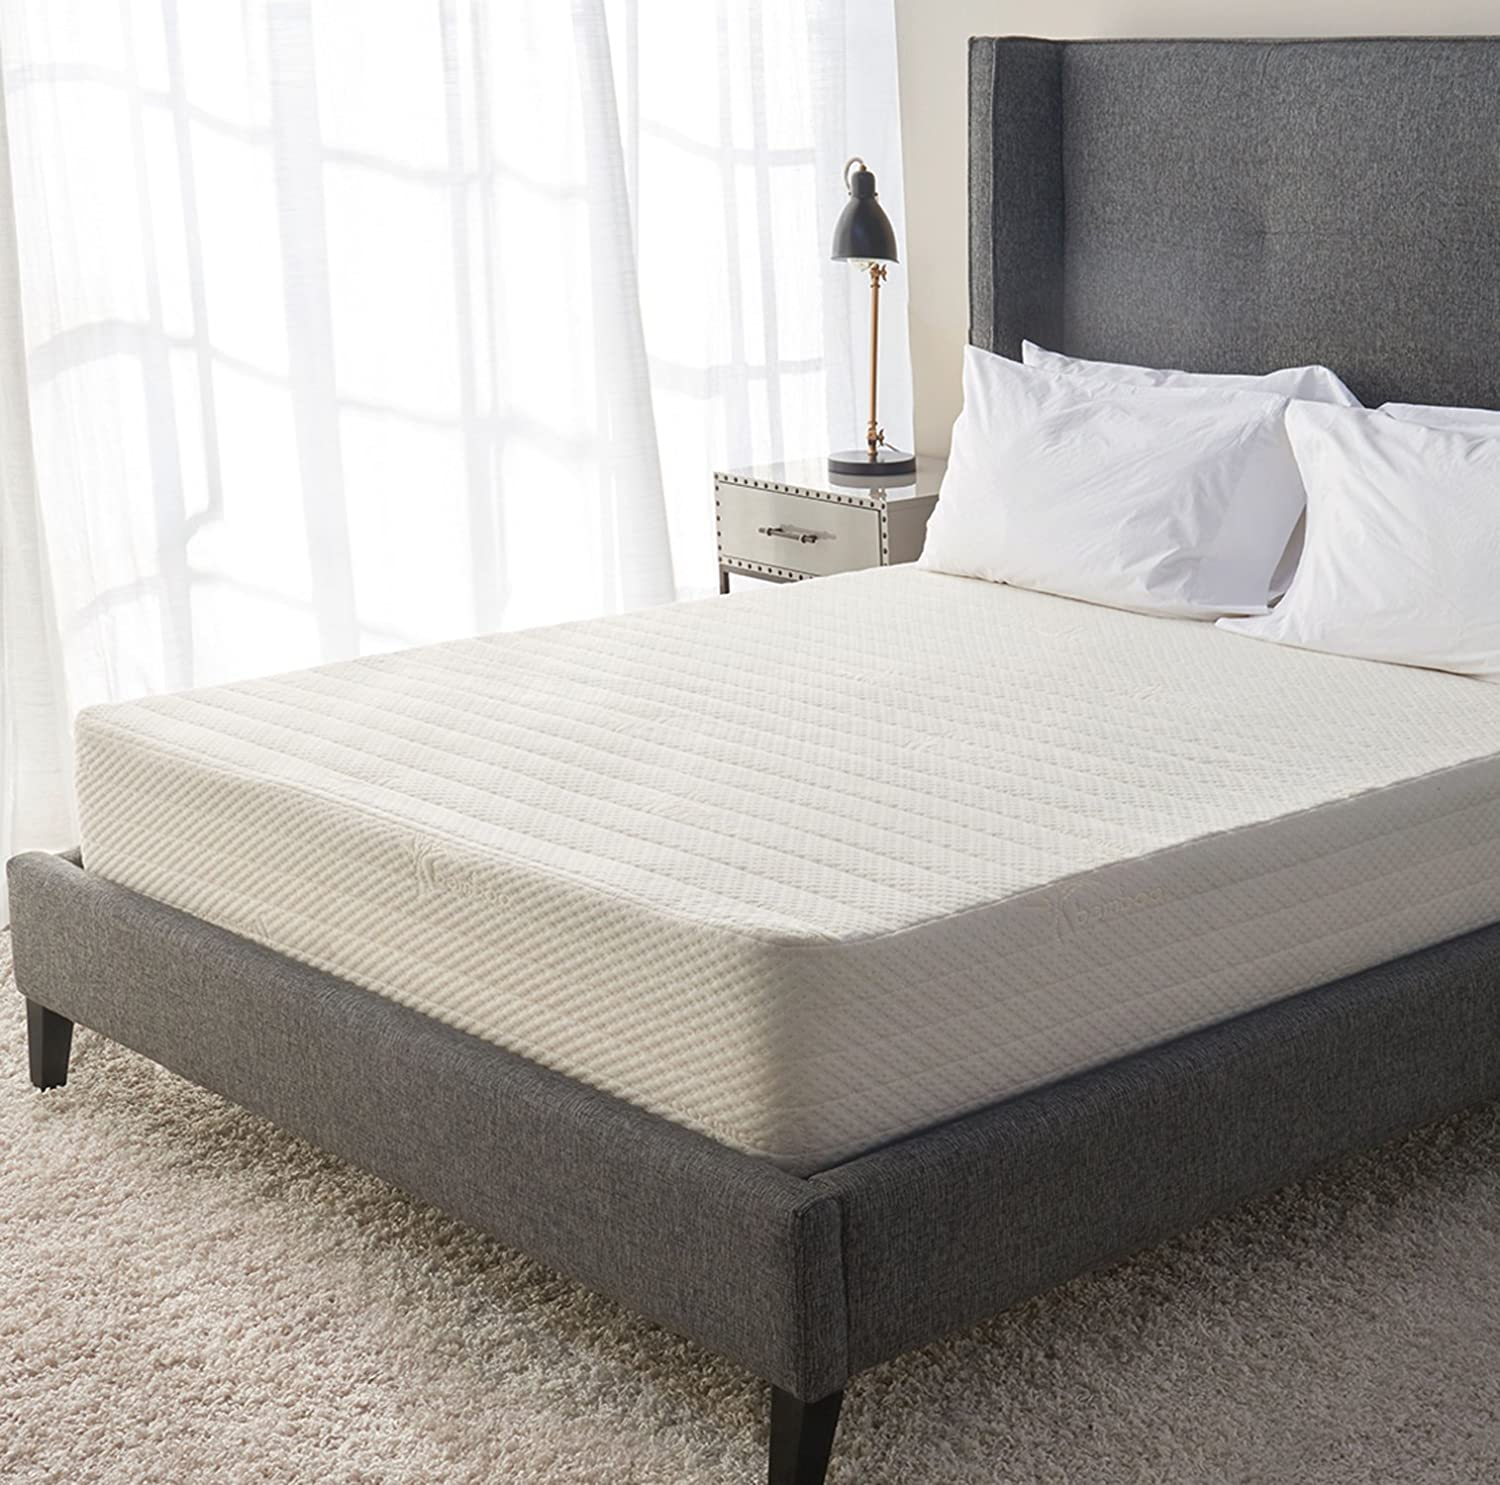 best-mattress-for-side-sleepers-1